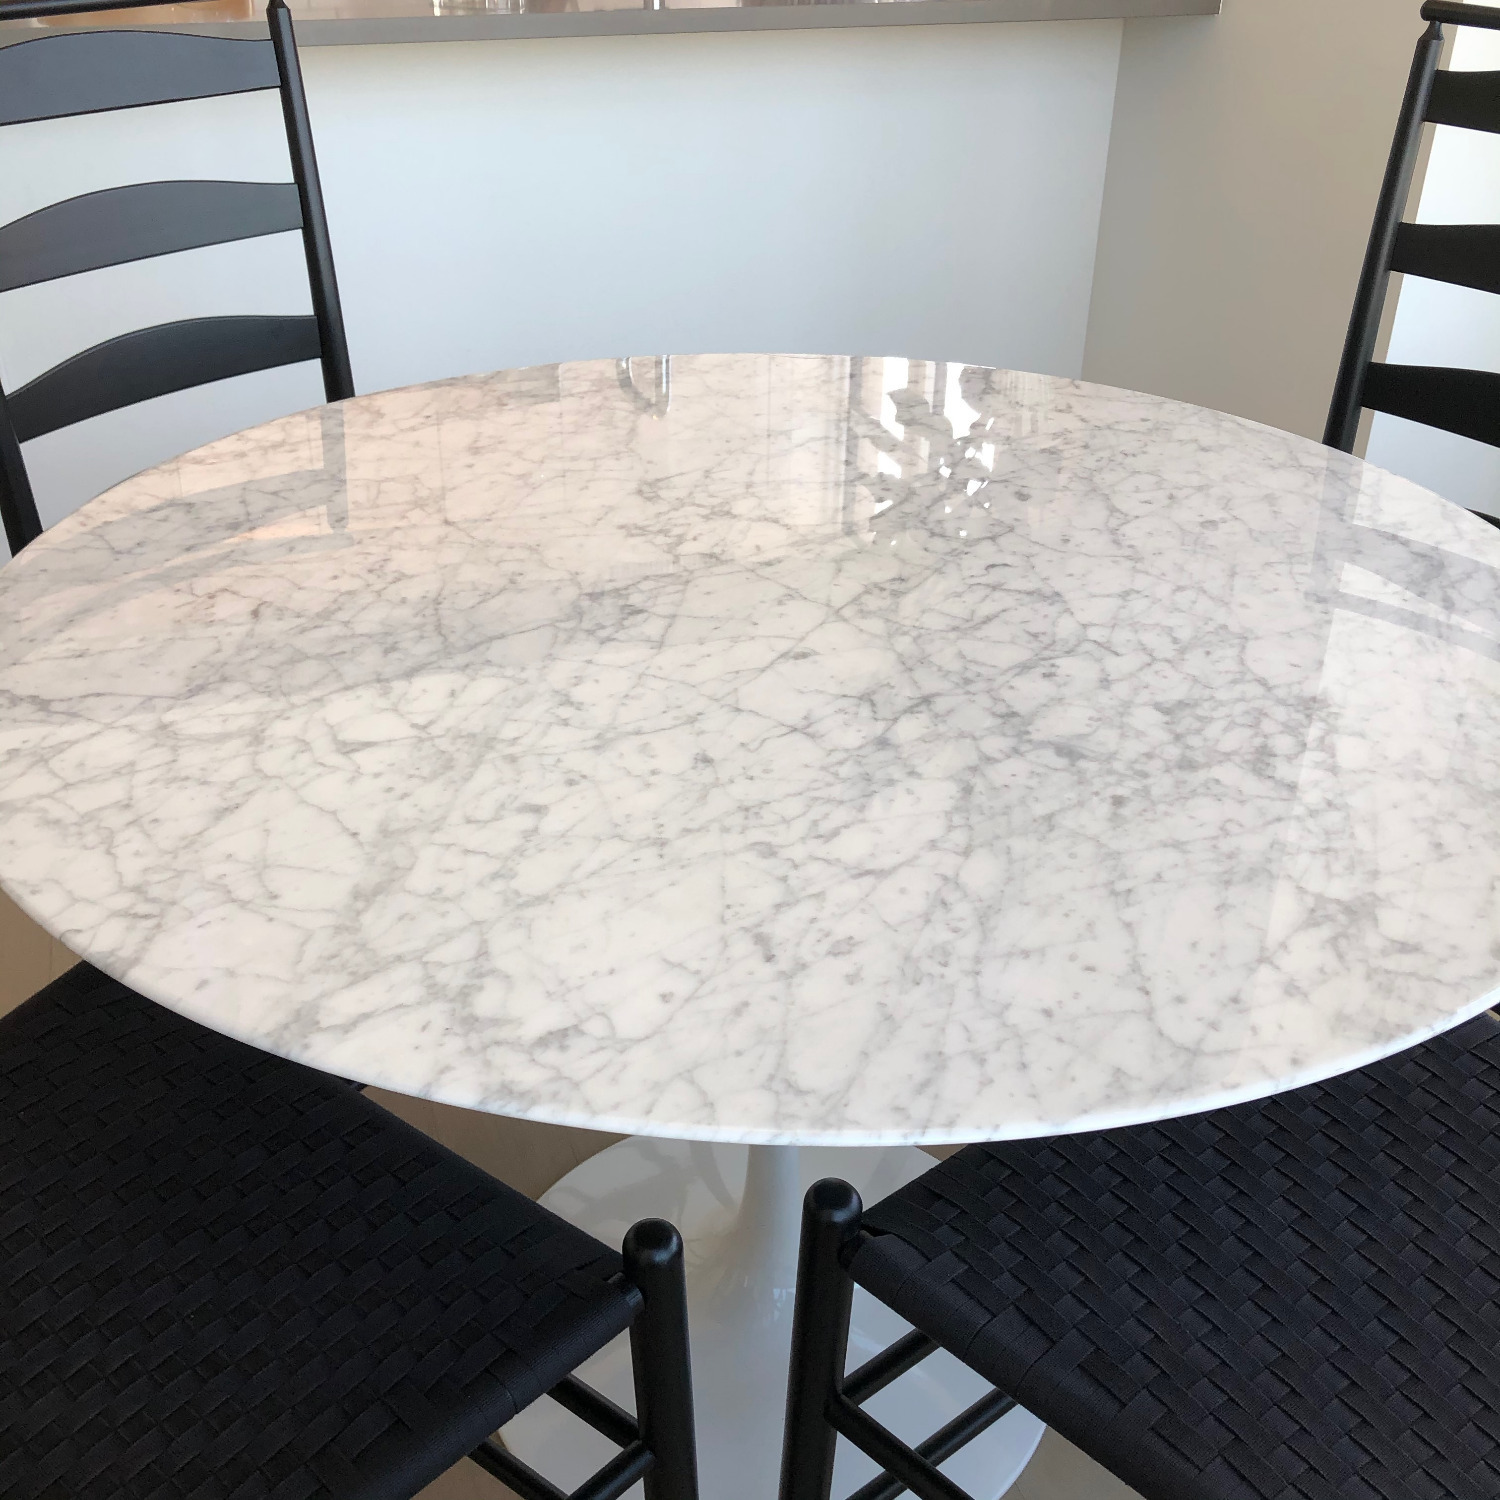 Knoll Saarinen Dining Table with Carrara Marble Top - image-3